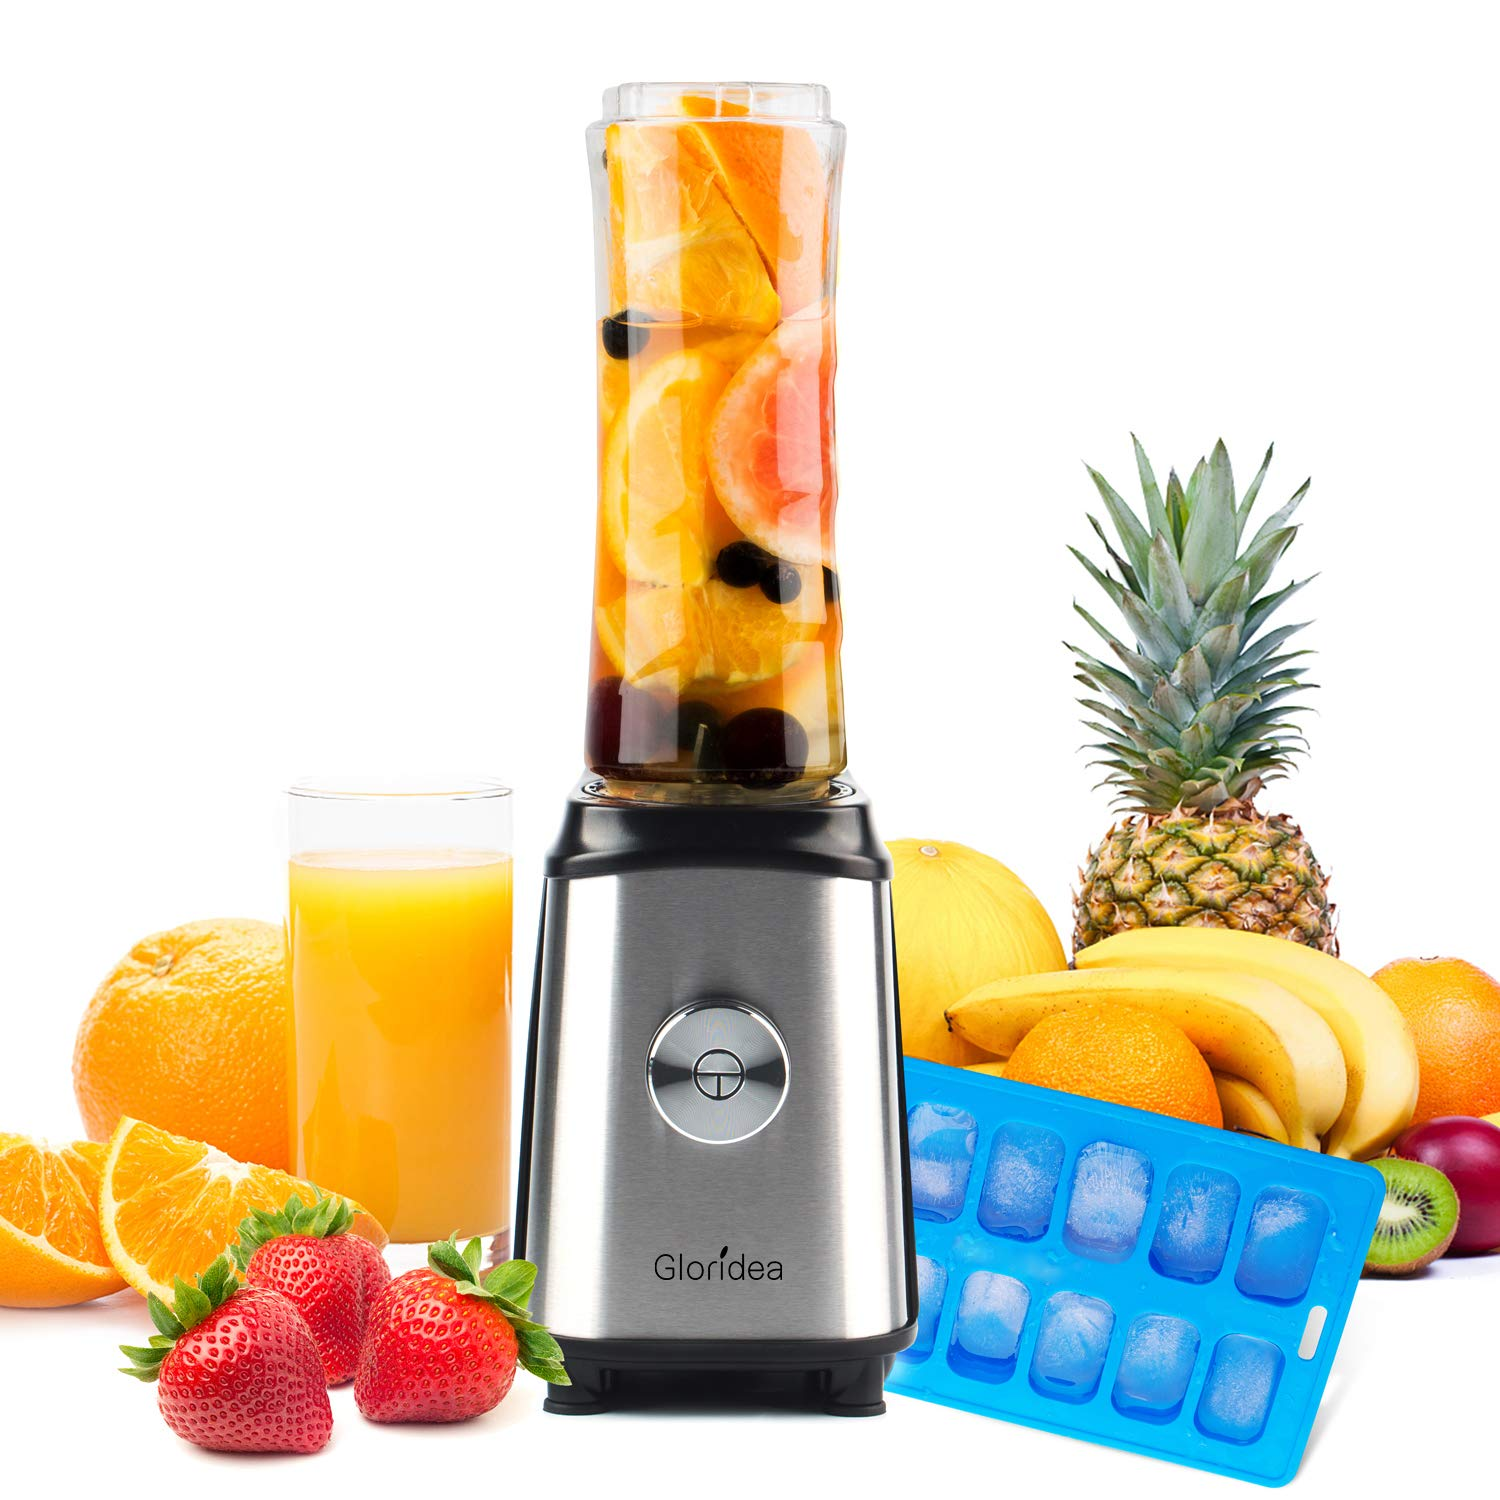 Personal Blender for Shakes and Smoothies - Powerful Drink Mixer with 20 Oz To Go Bottle, Single Use Juicer with Easy One Touch Operation, Great for Sports, Travel, Gym and Office (with Silicone Ice Cube Tray & Bottle Brush) by Gloridea